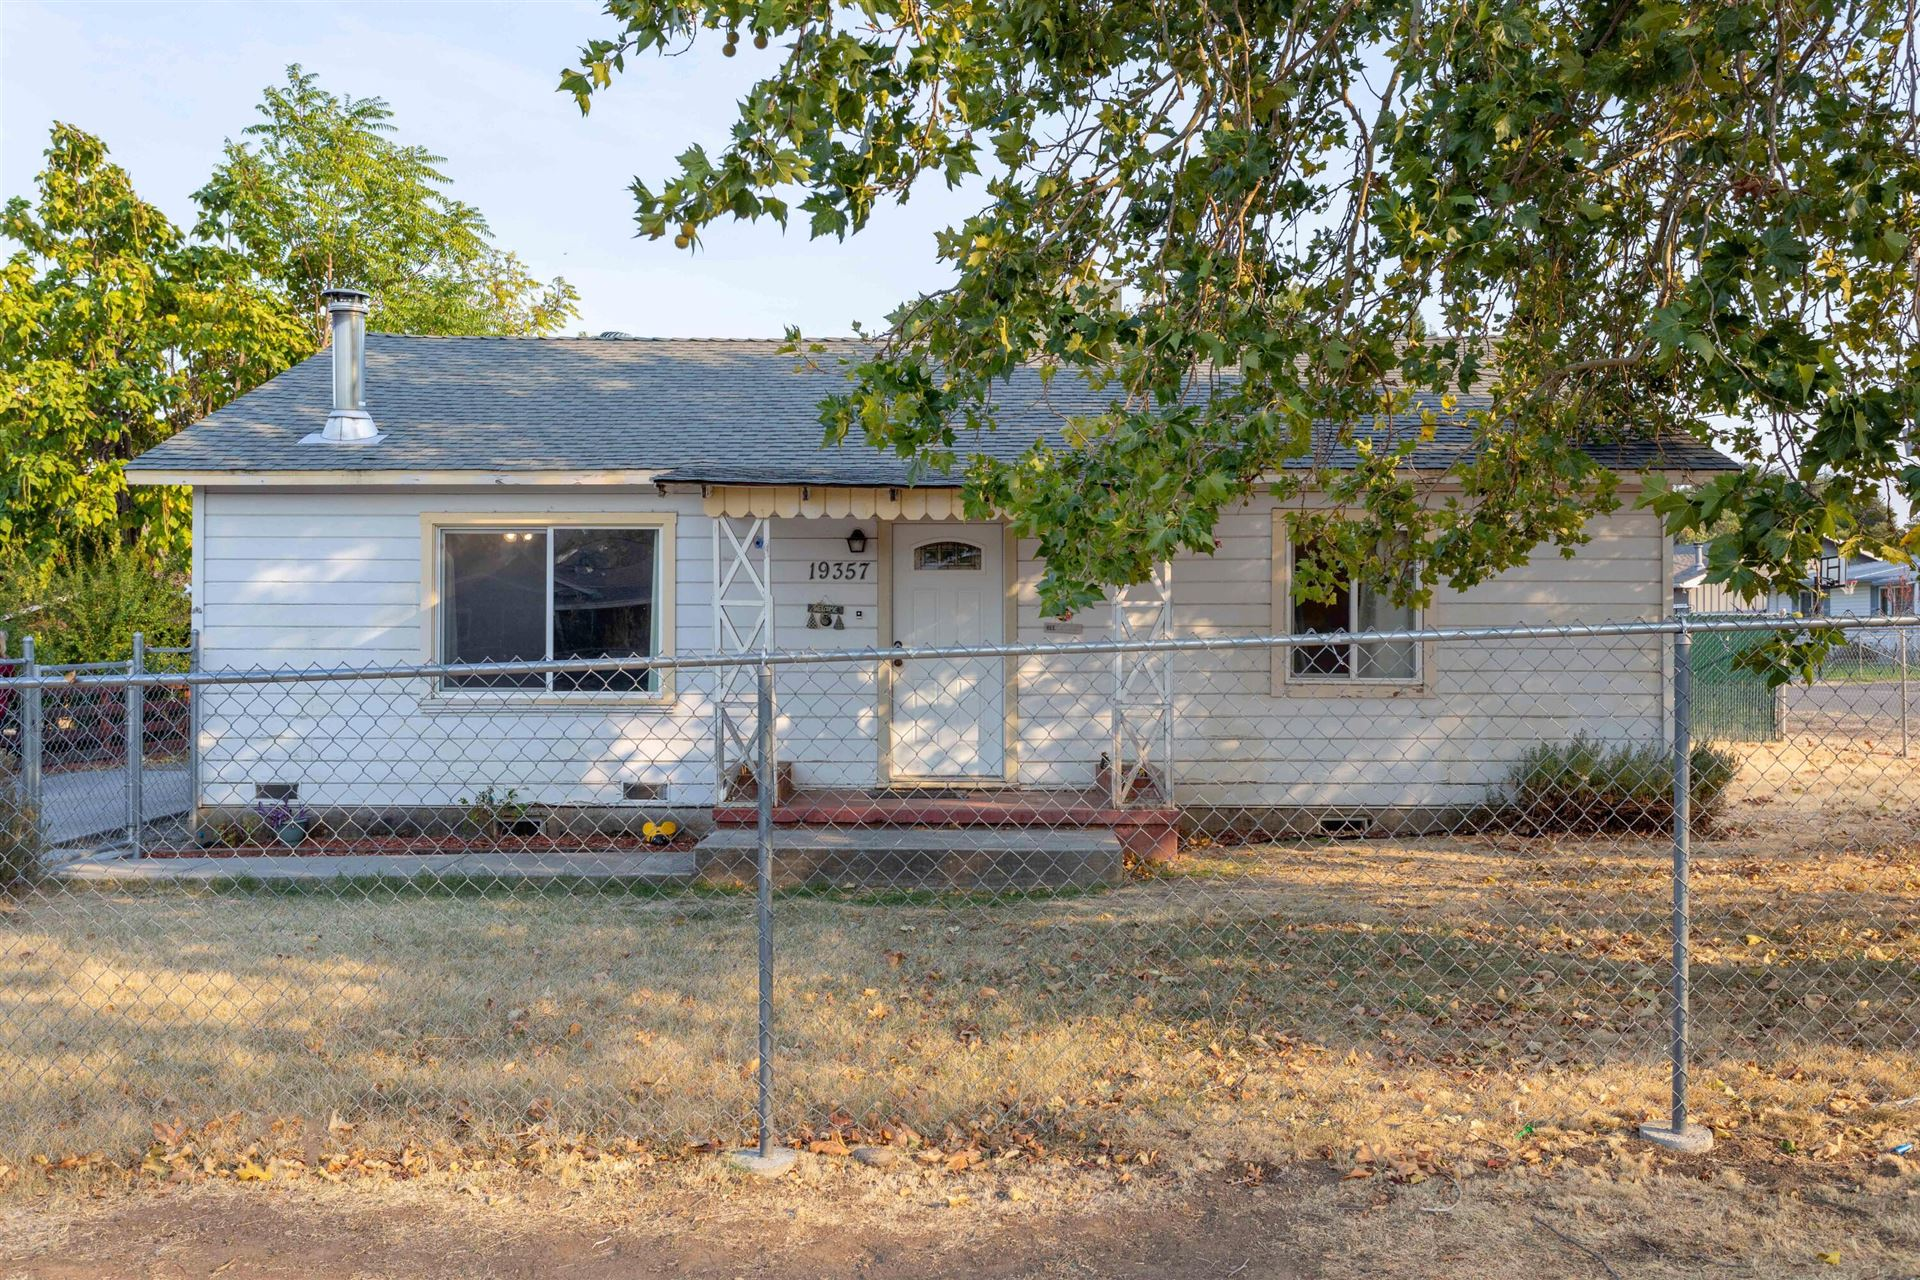 Photo of 19357 Hill St, Anderson, CA 96007 (MLS # 21-4549)